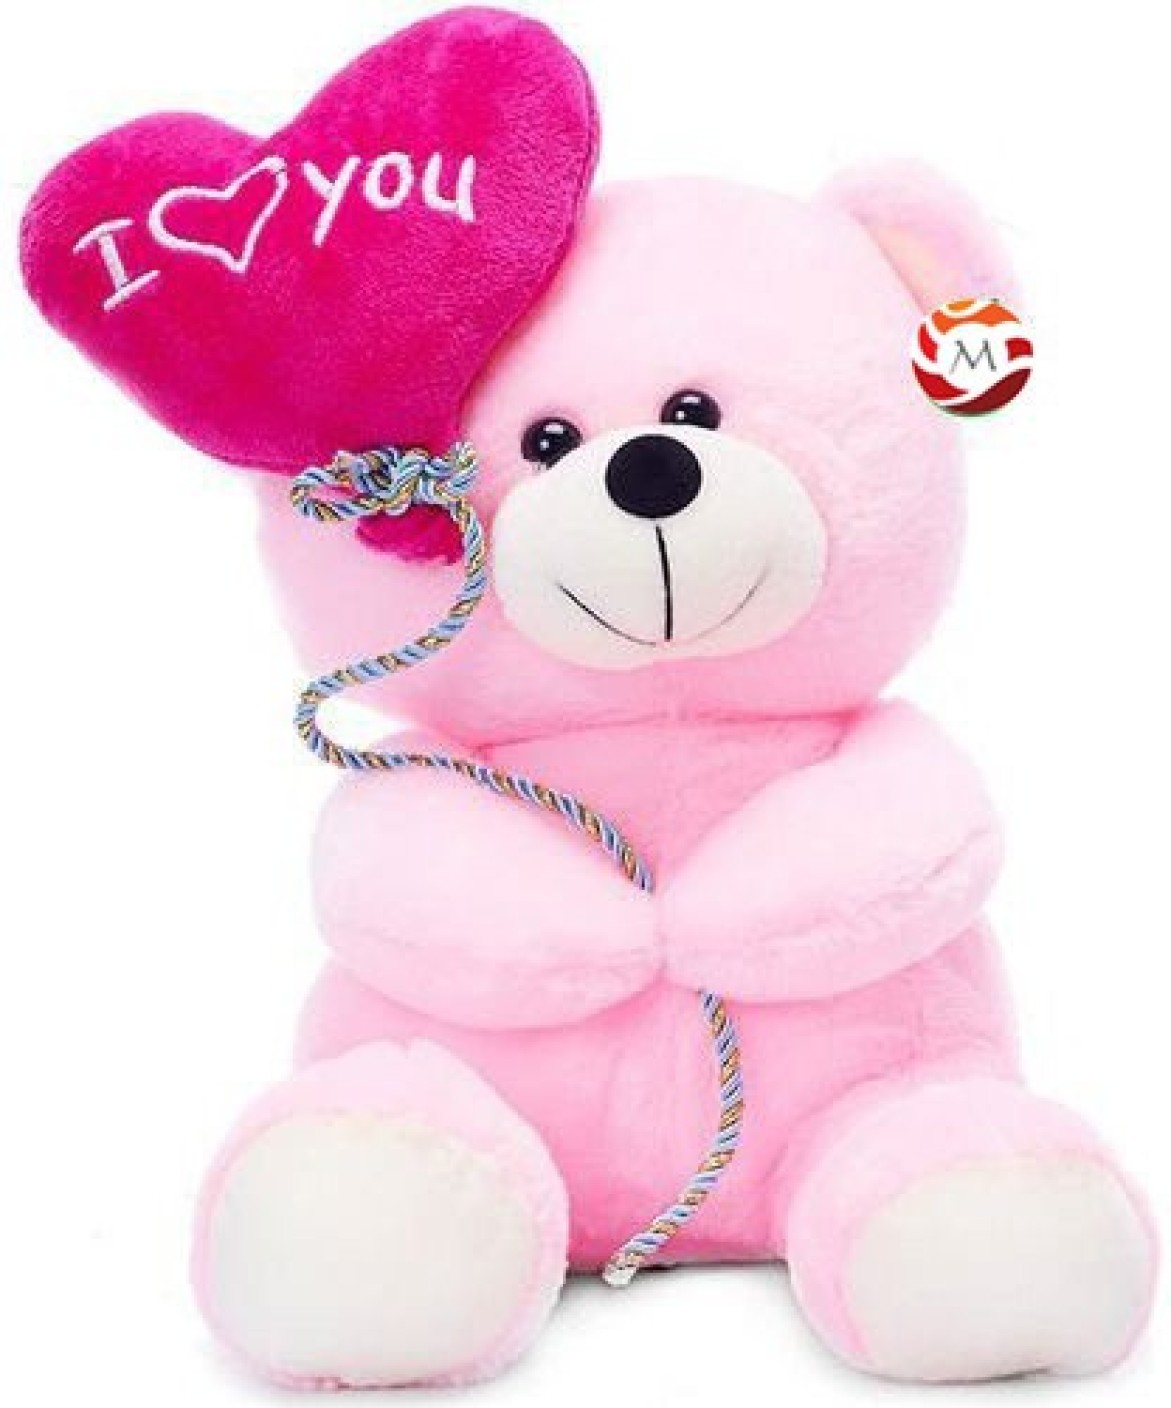 Toys For Love : Mgplifestyle i love you ballon heart teddy bear pink